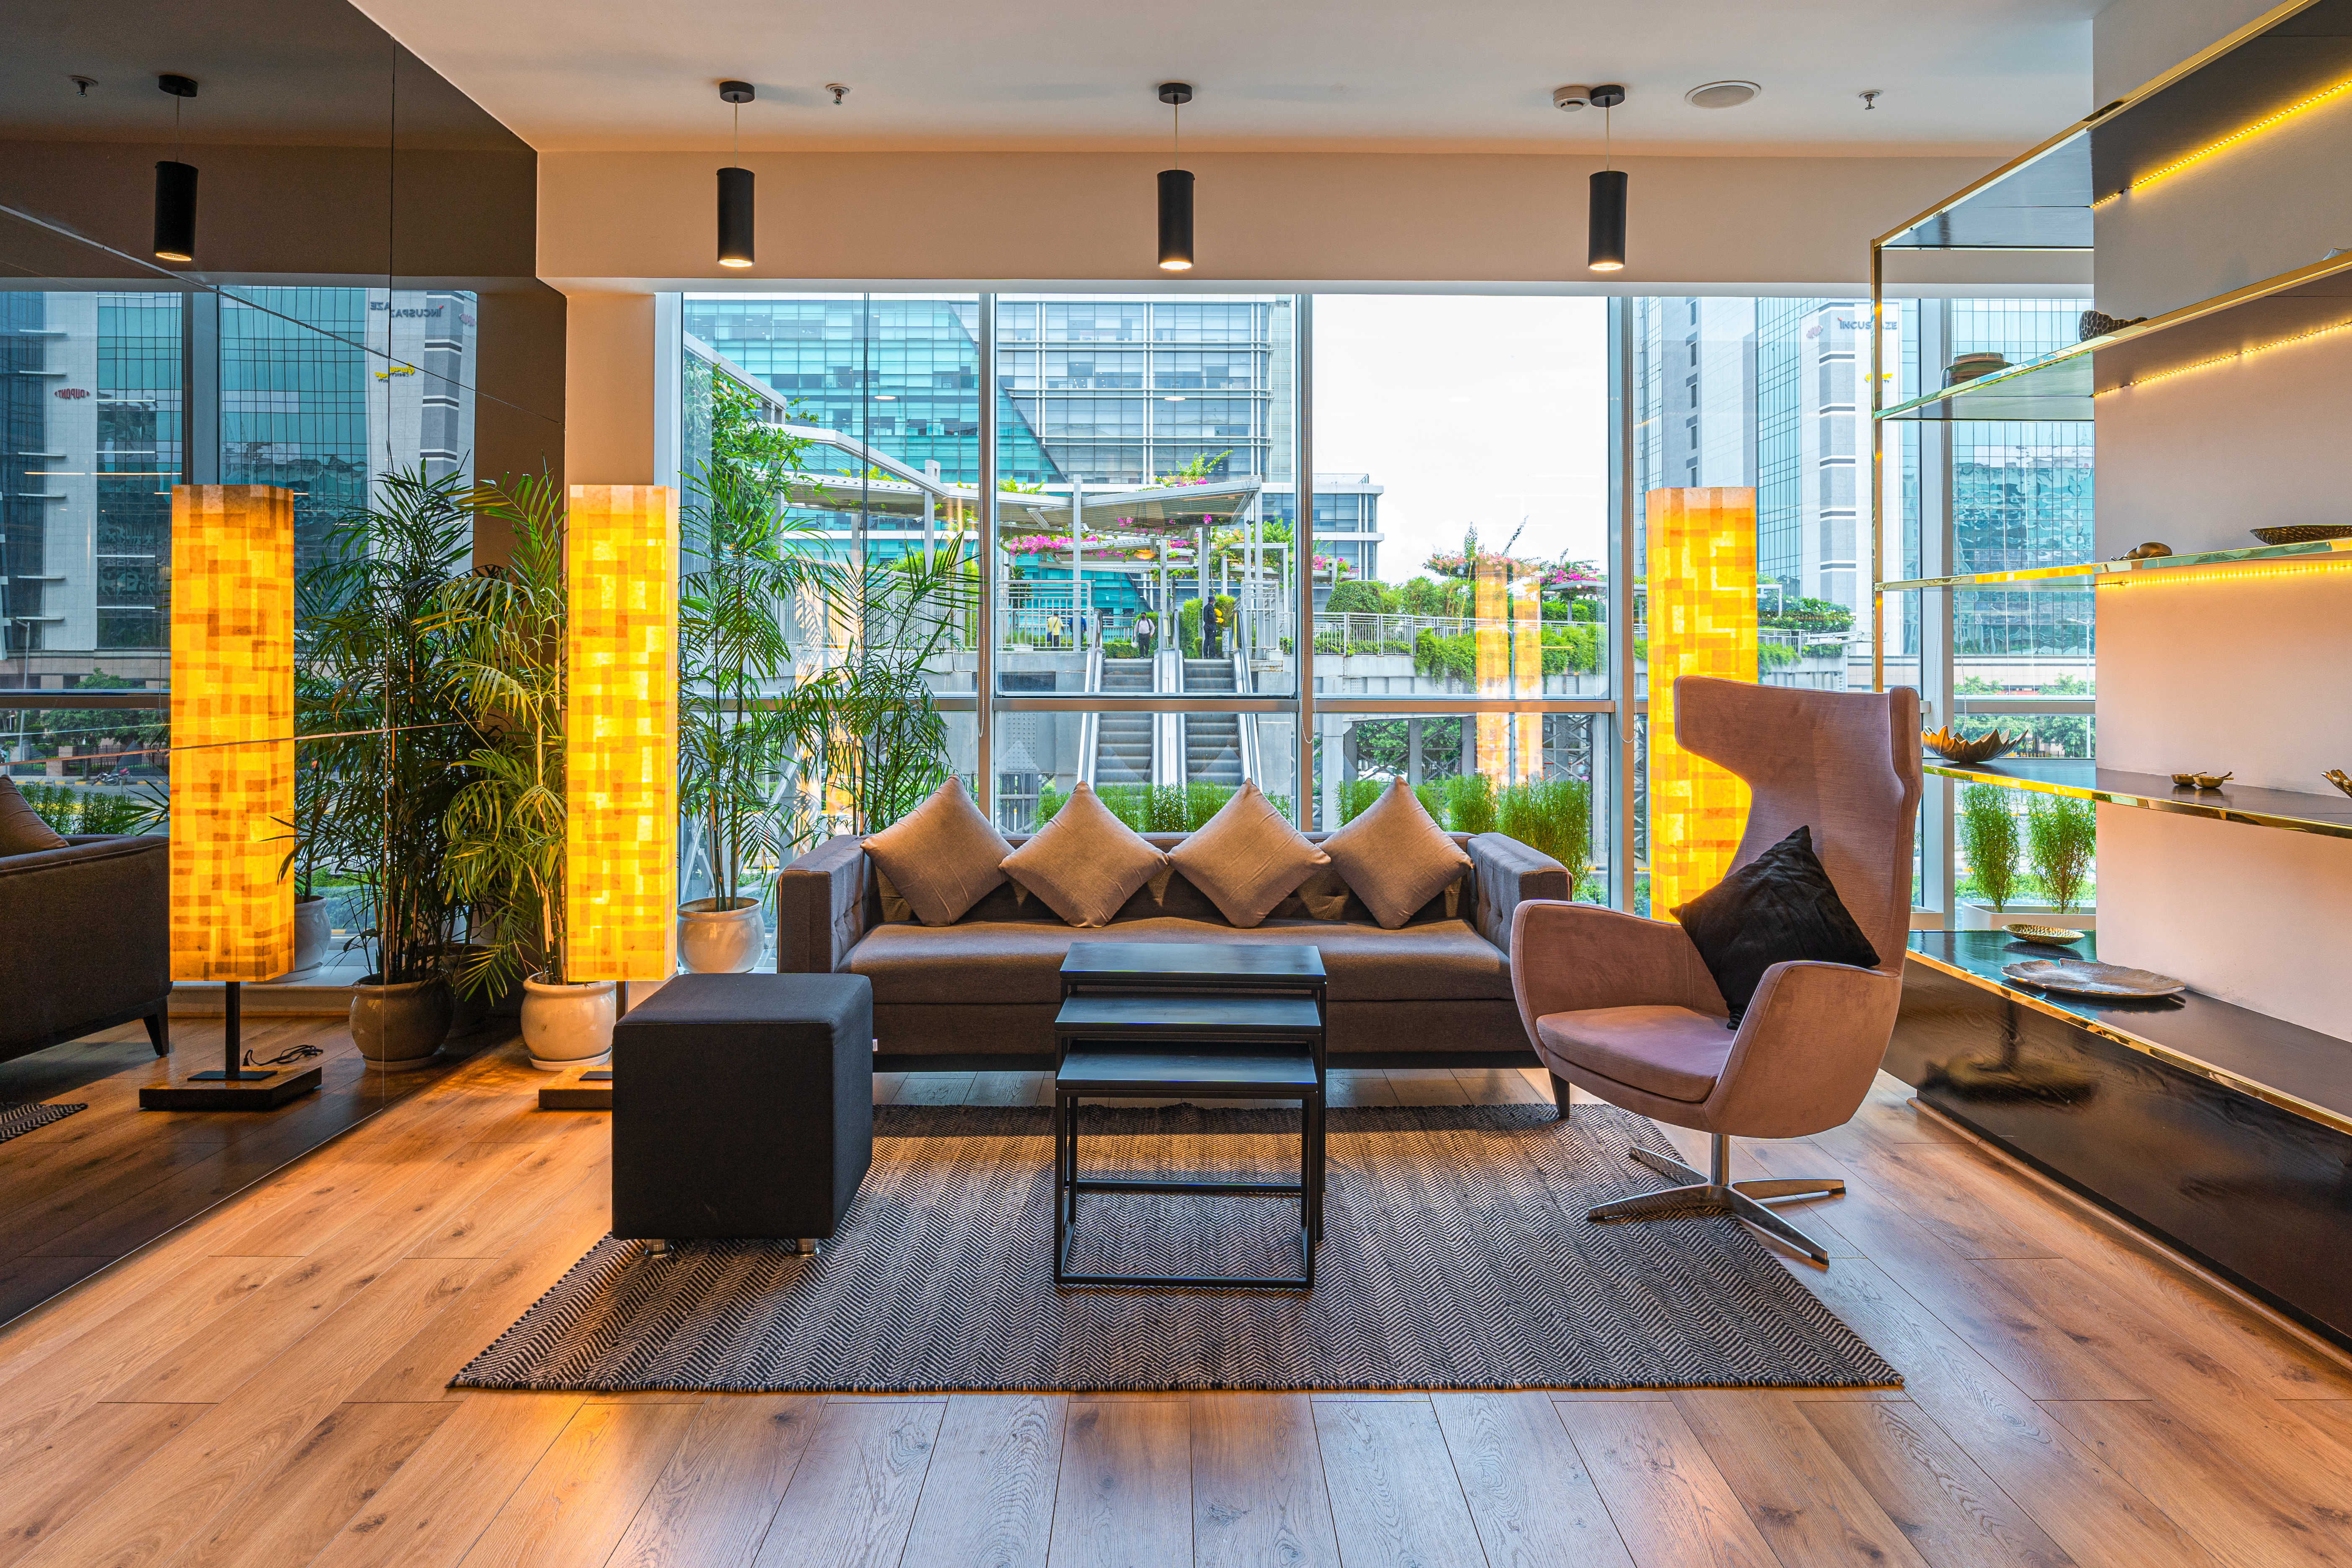 Infinity Tower A lounge